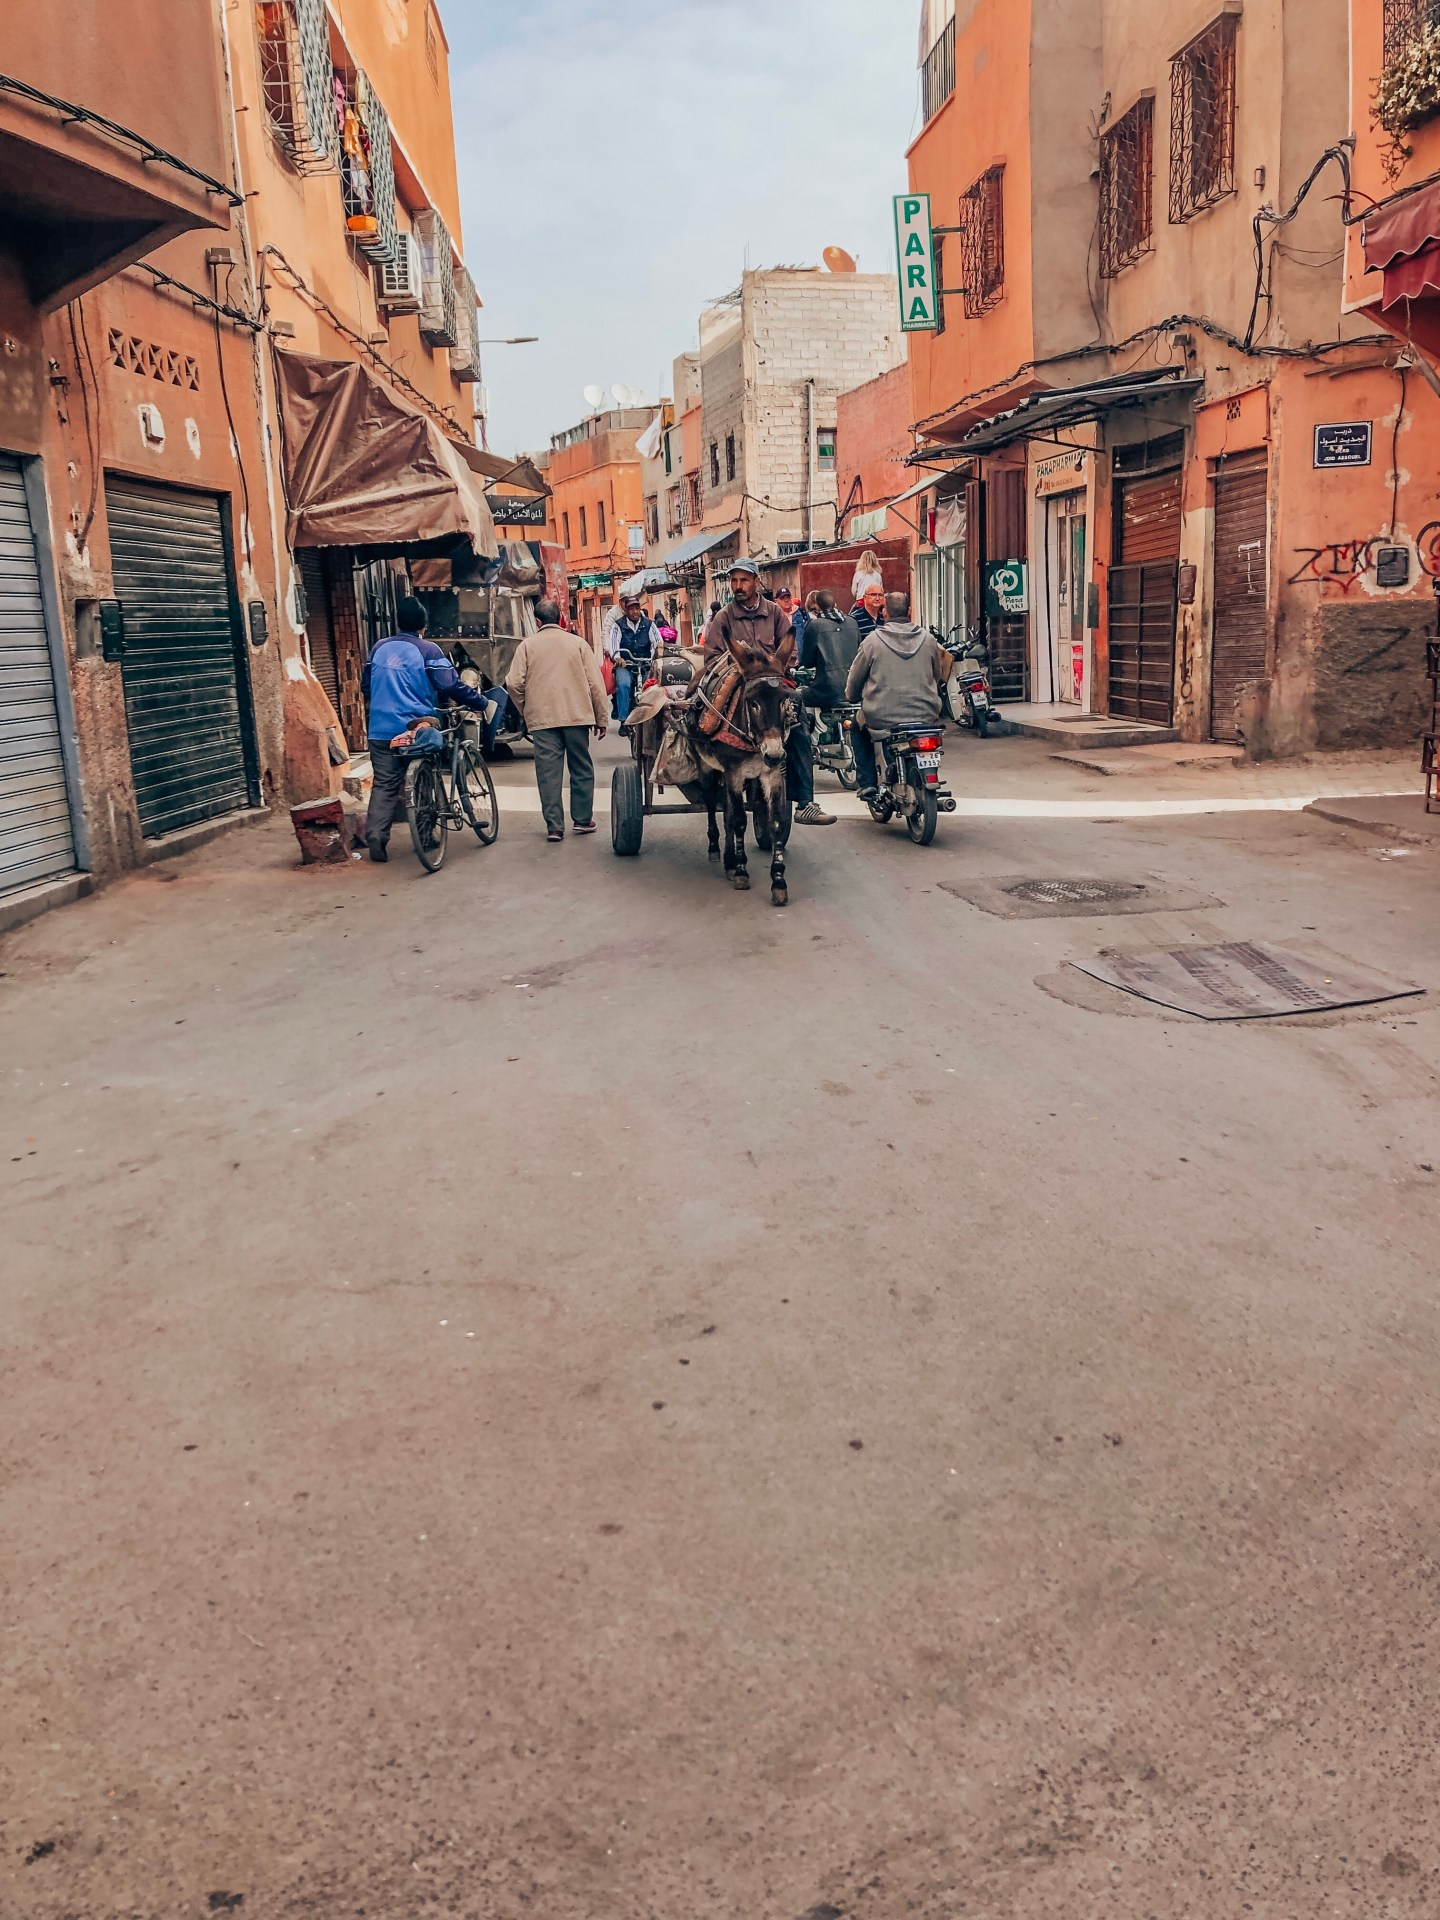 Street view—Old City, Marrakech, Morocco